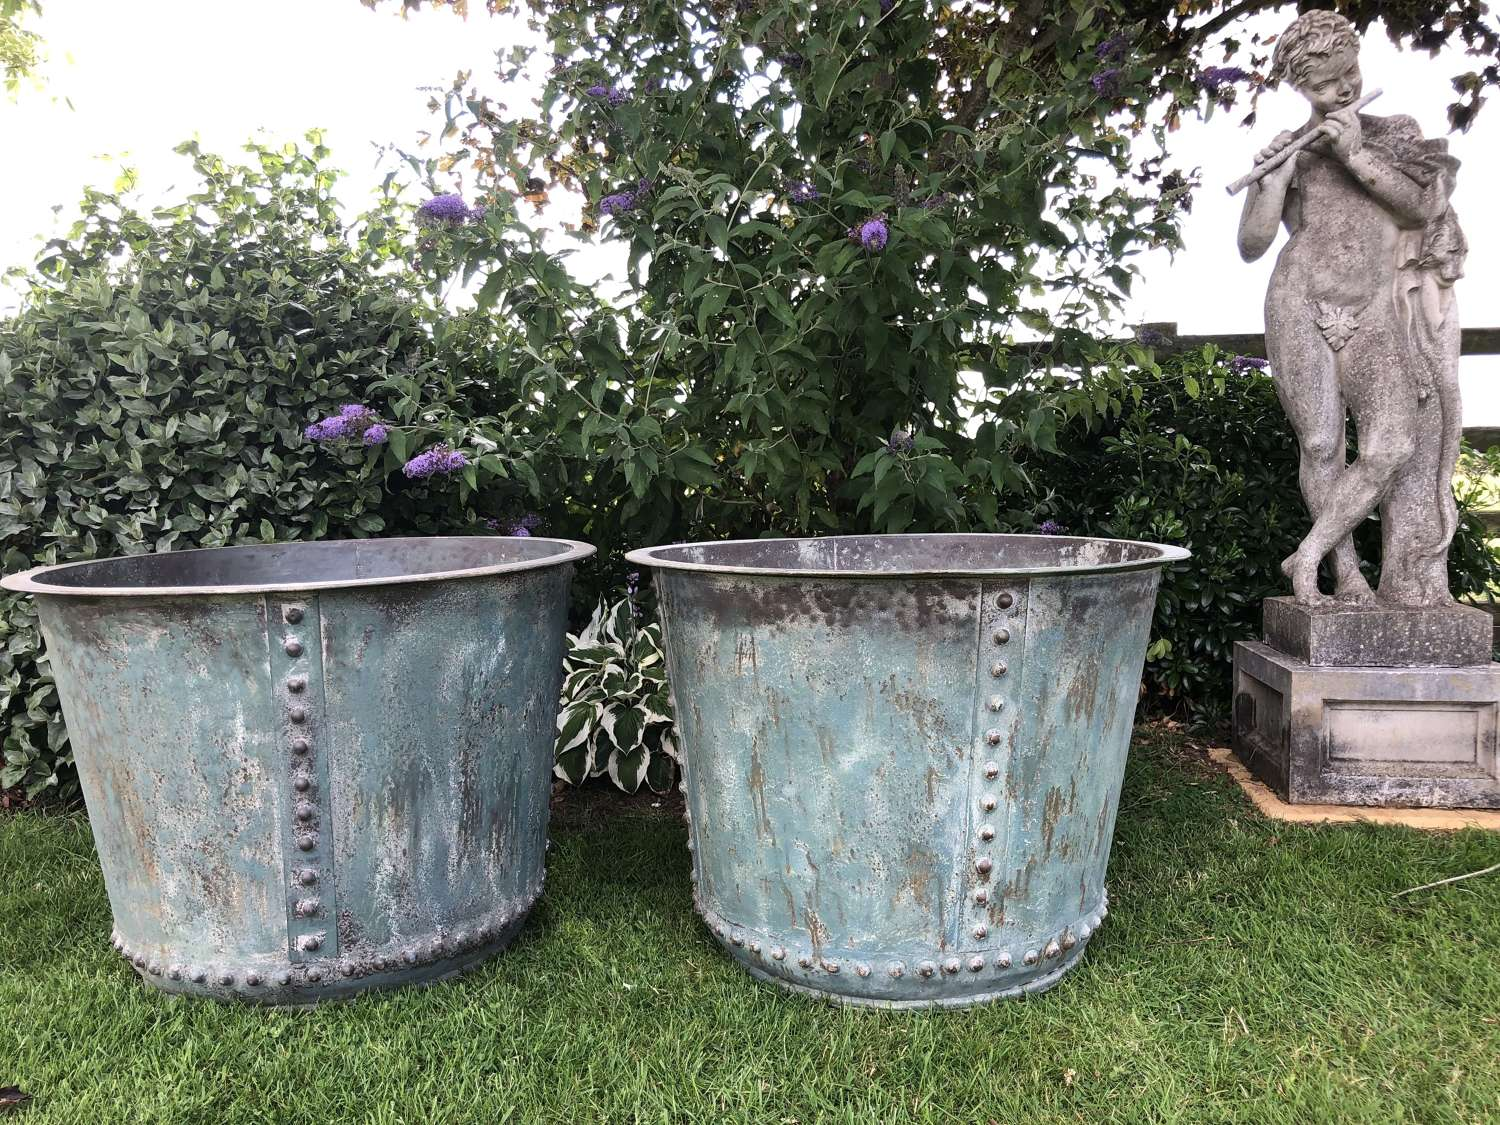 Large verdigris Iron Tub - Copper look planter